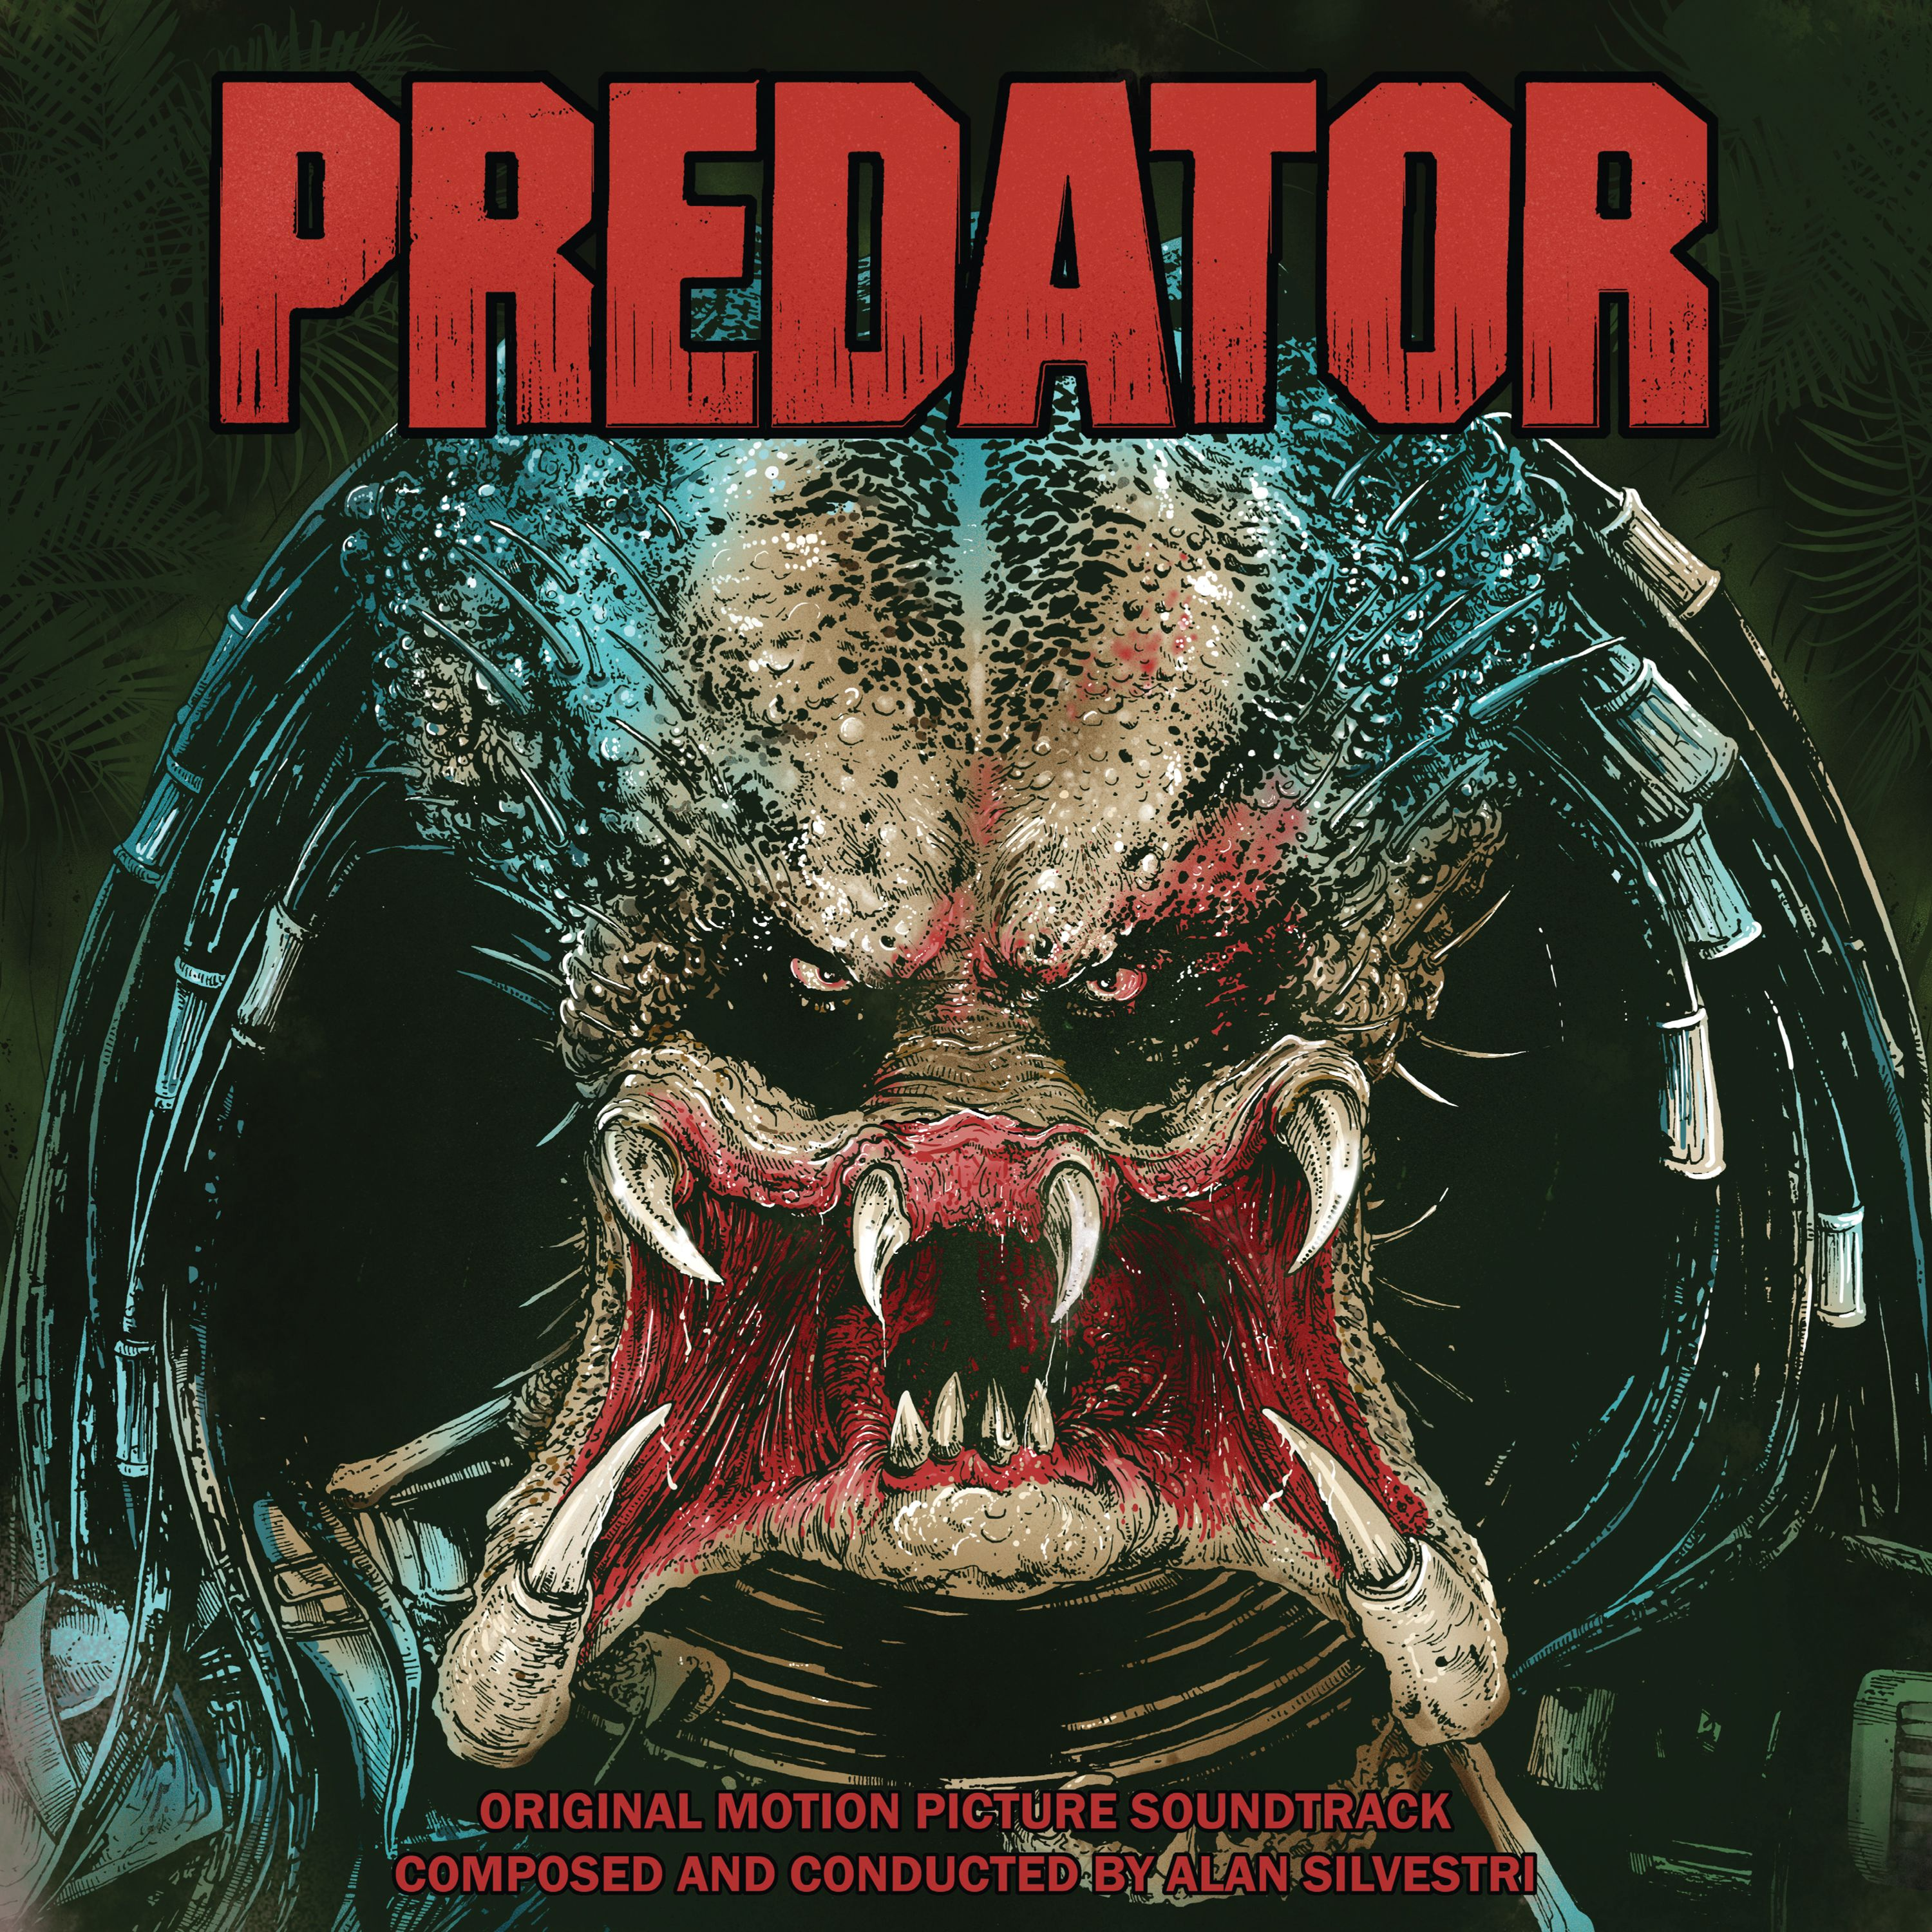 CoverArt-Vinyl-extralarge - Predator--Original Motion Picture Soundtrack